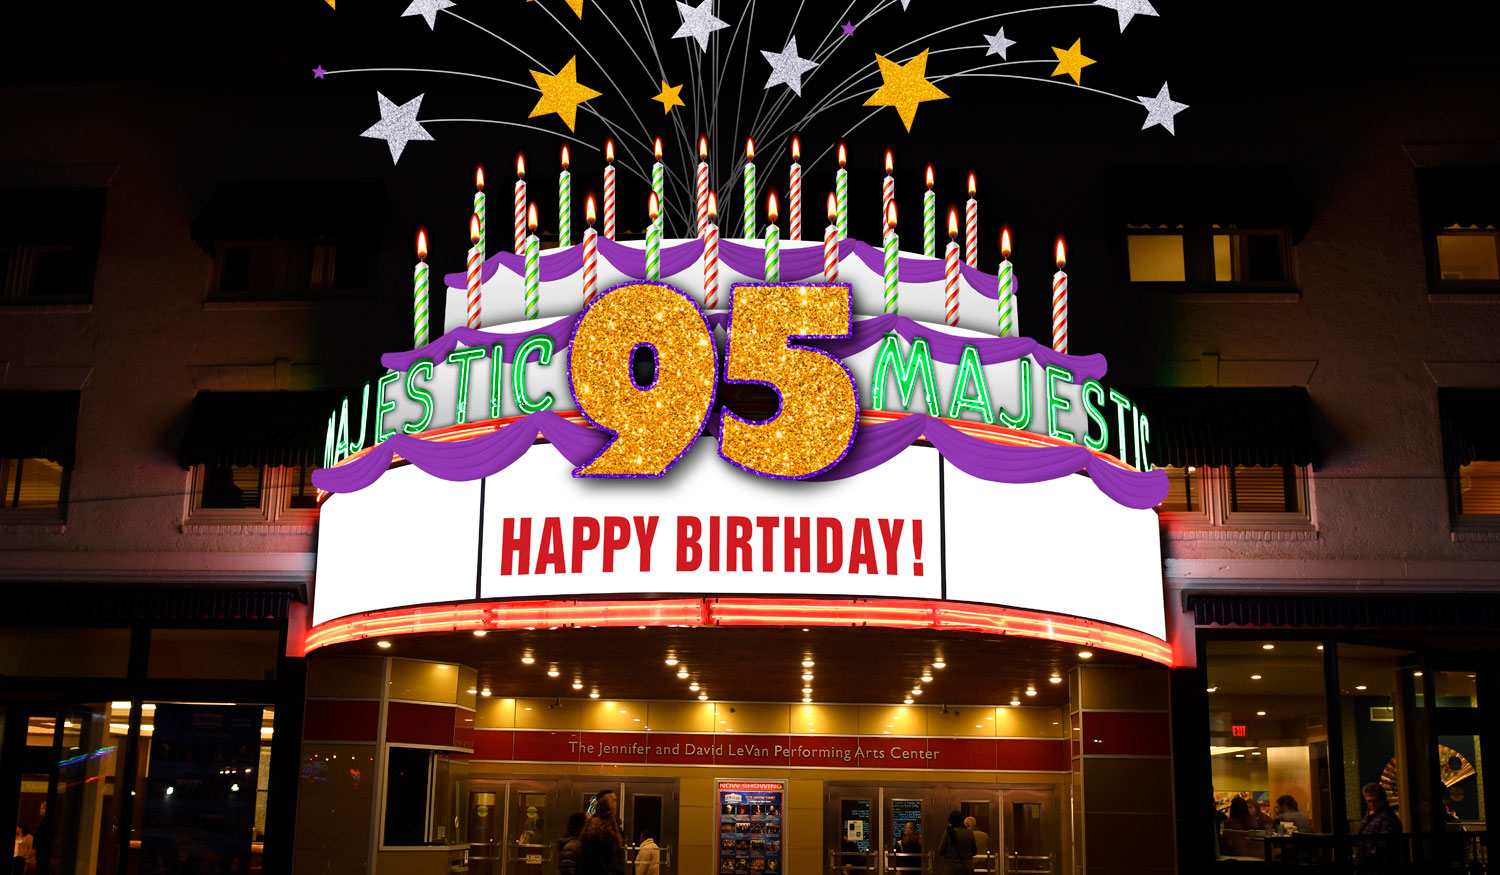 The Majestic Theater with Happy 95th Birthday on the sign